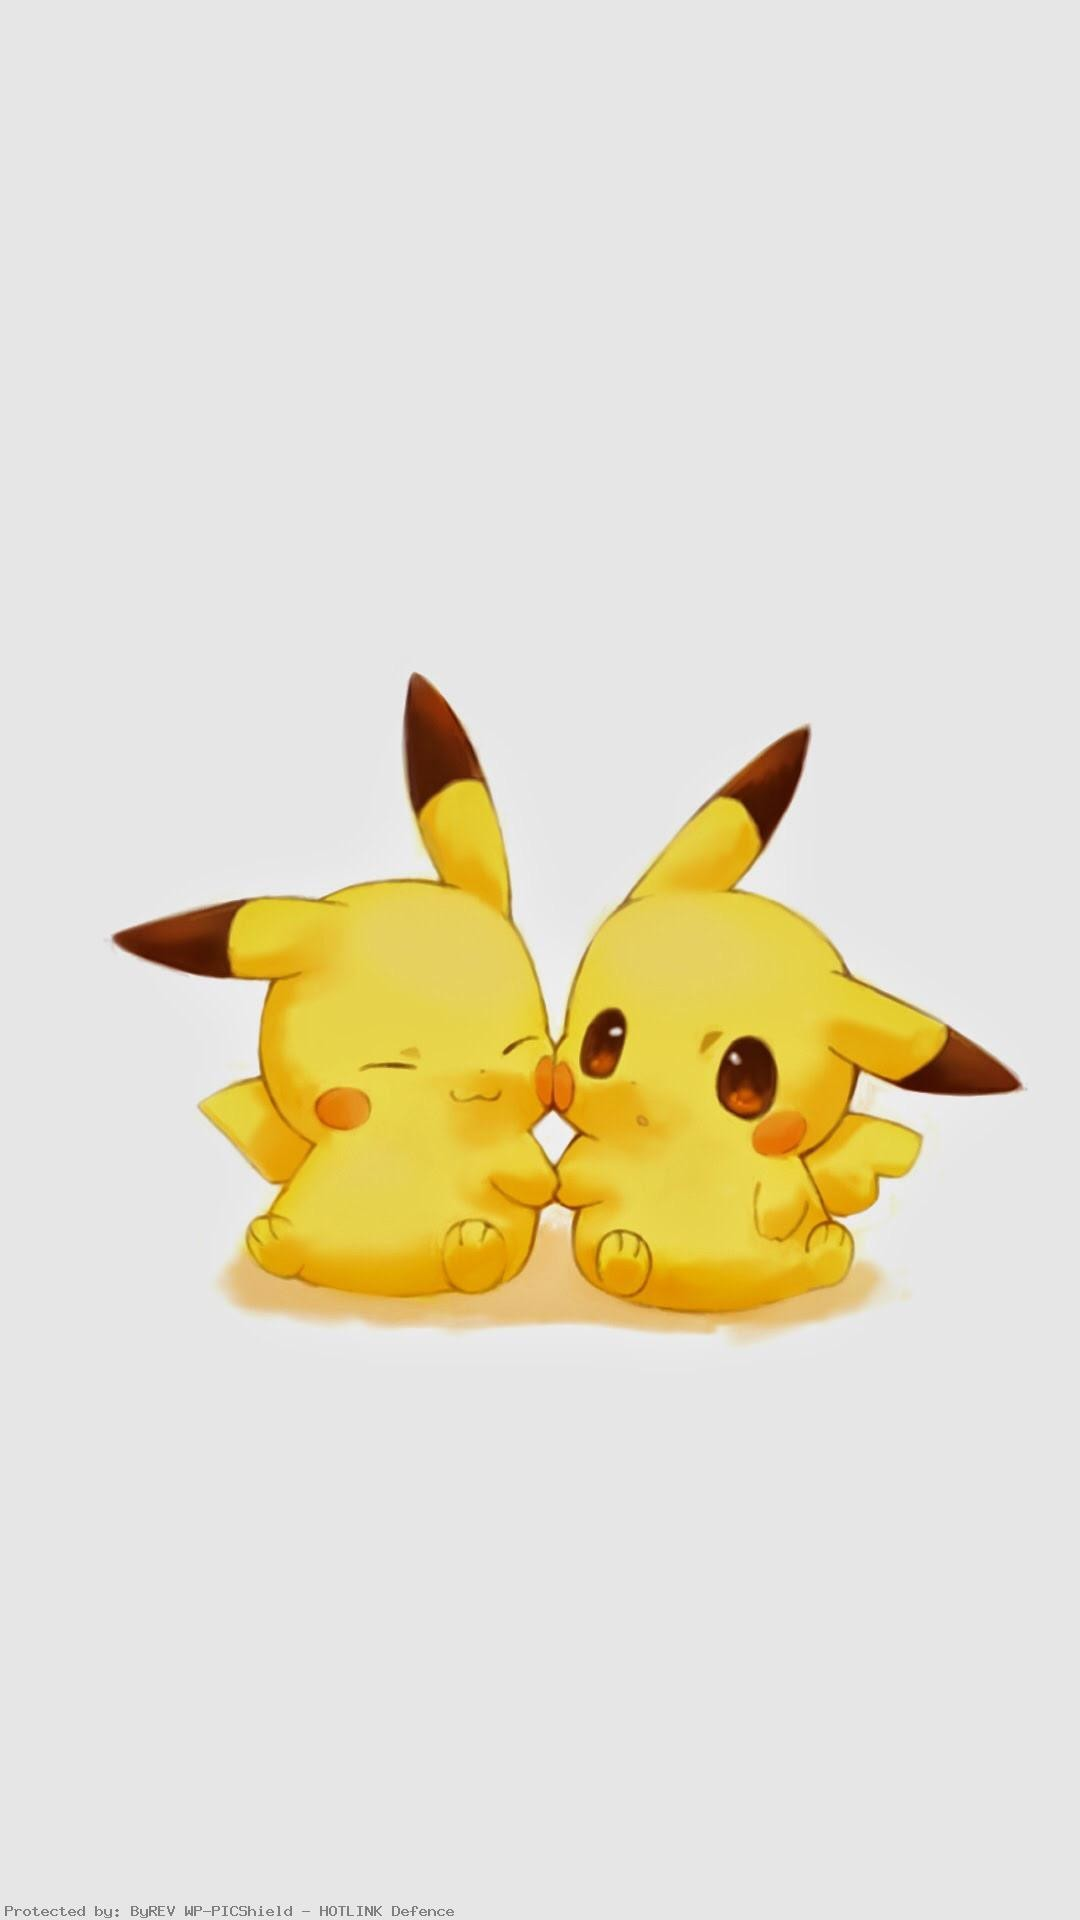 Tap-image-for-more-funny-cute-Pikachu-Pikachu-